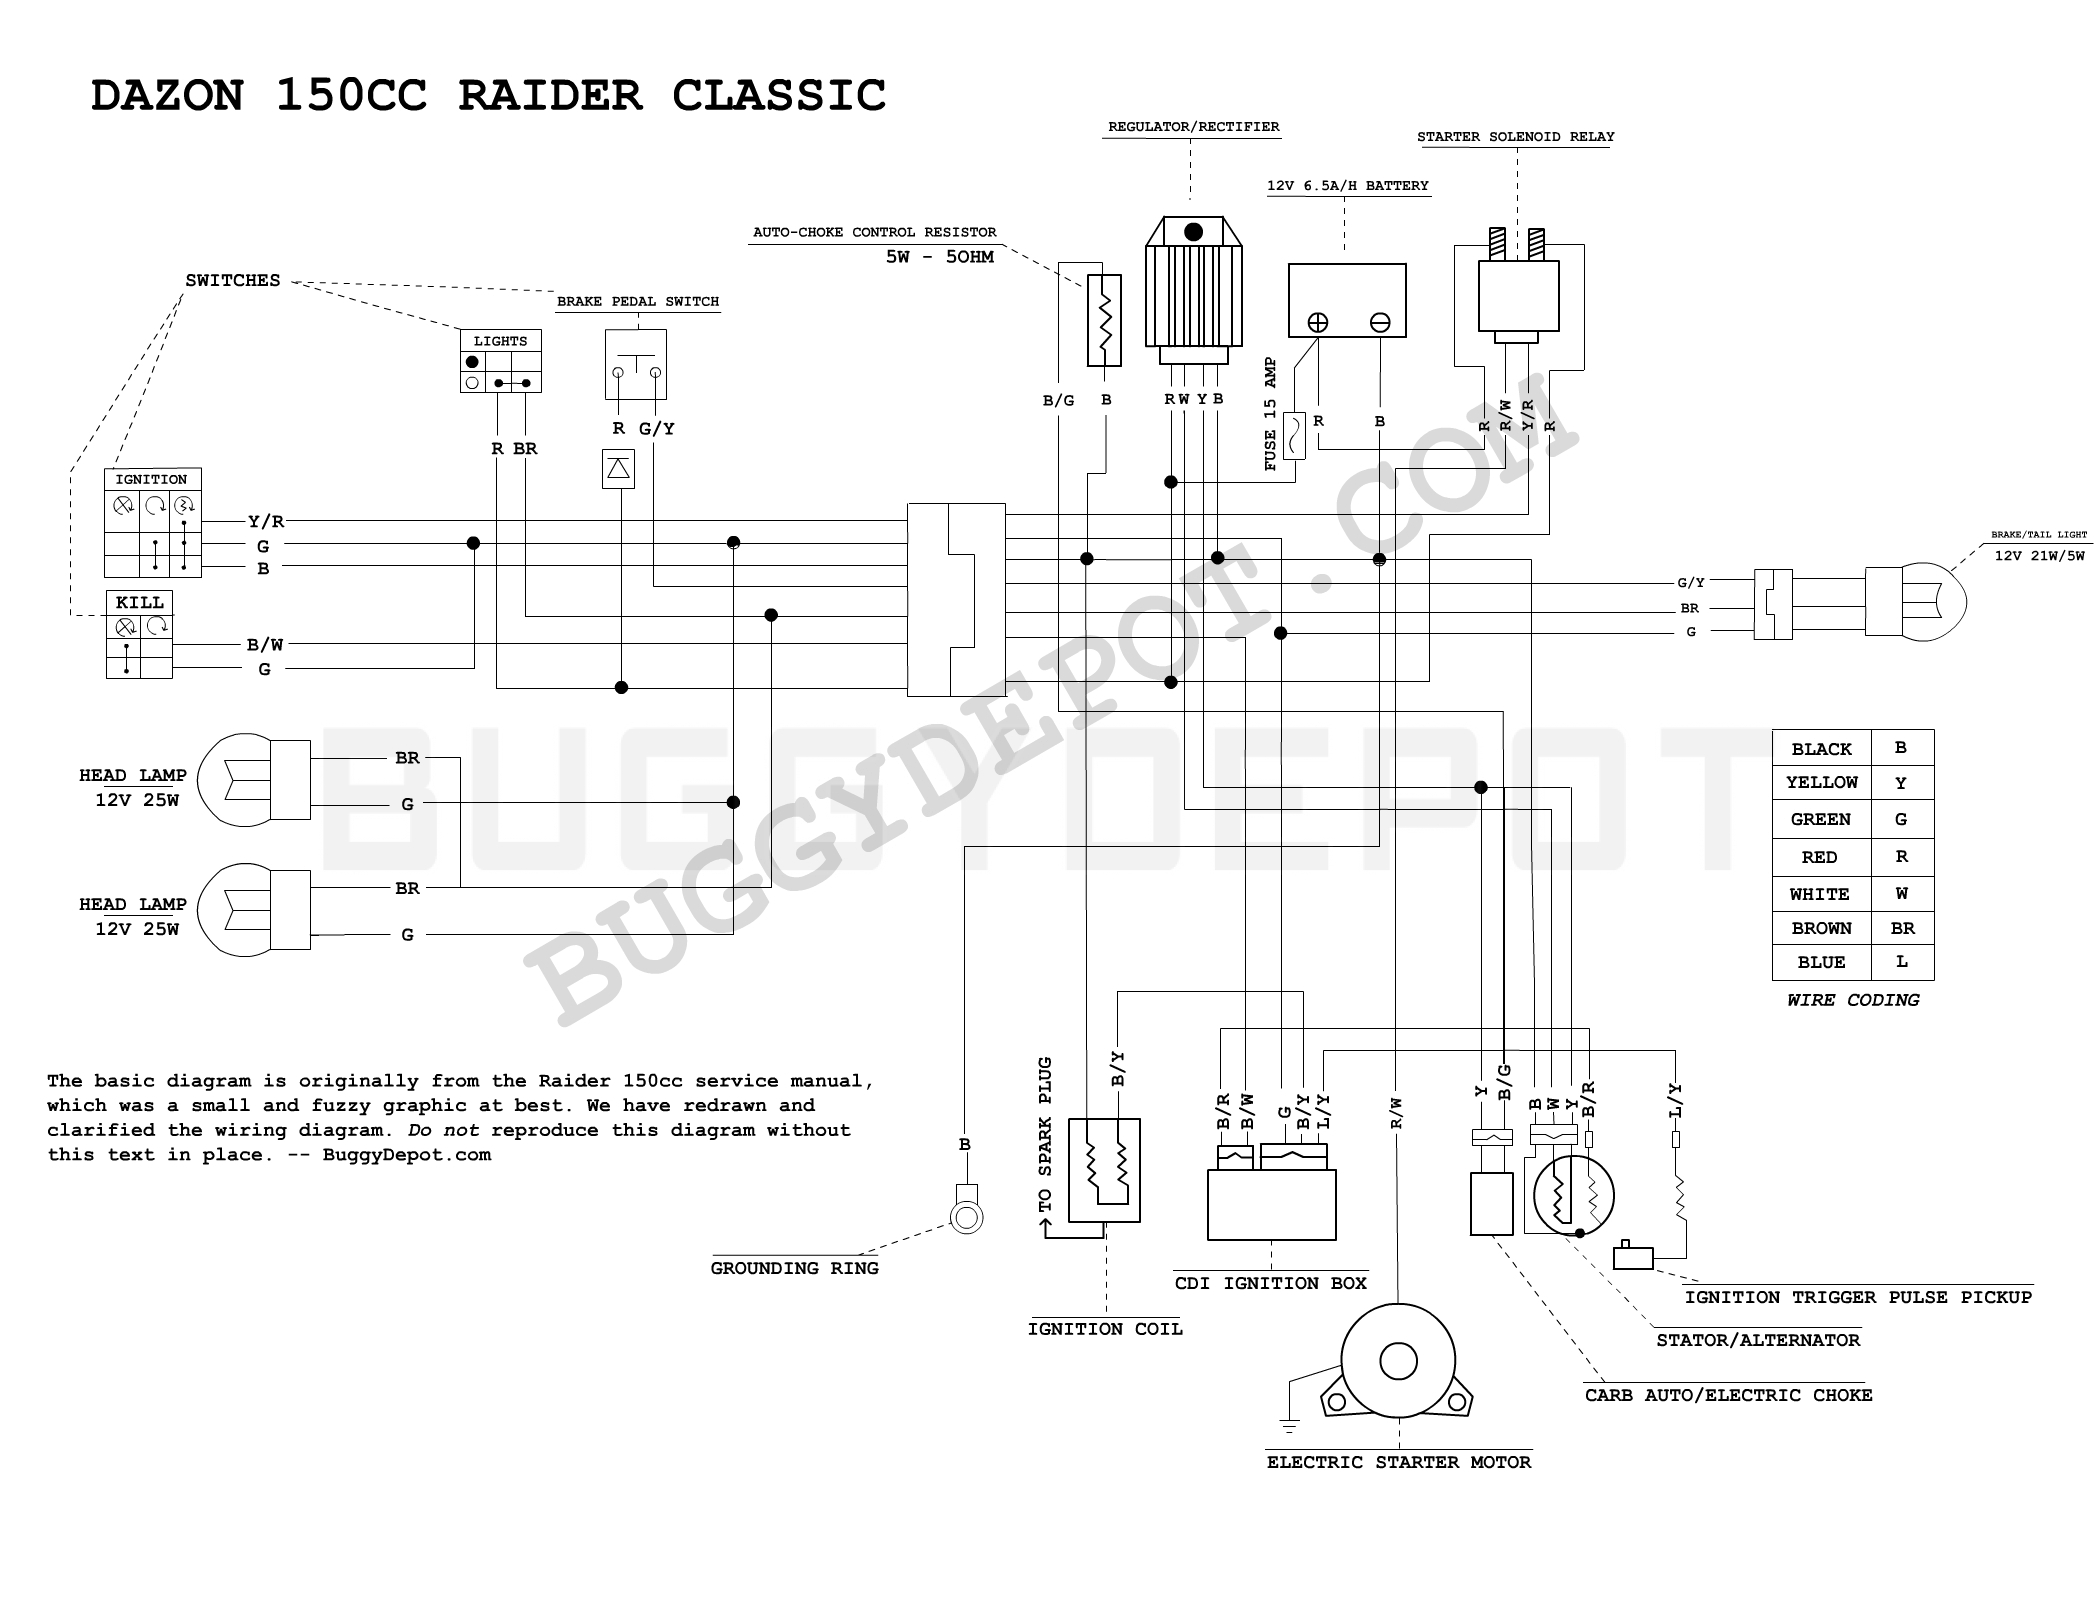 article_33_1278205207 gy6 150cc ignition troubleshooting guide no spark? buggy depot big boy 250 wiring diagram at mr168.co